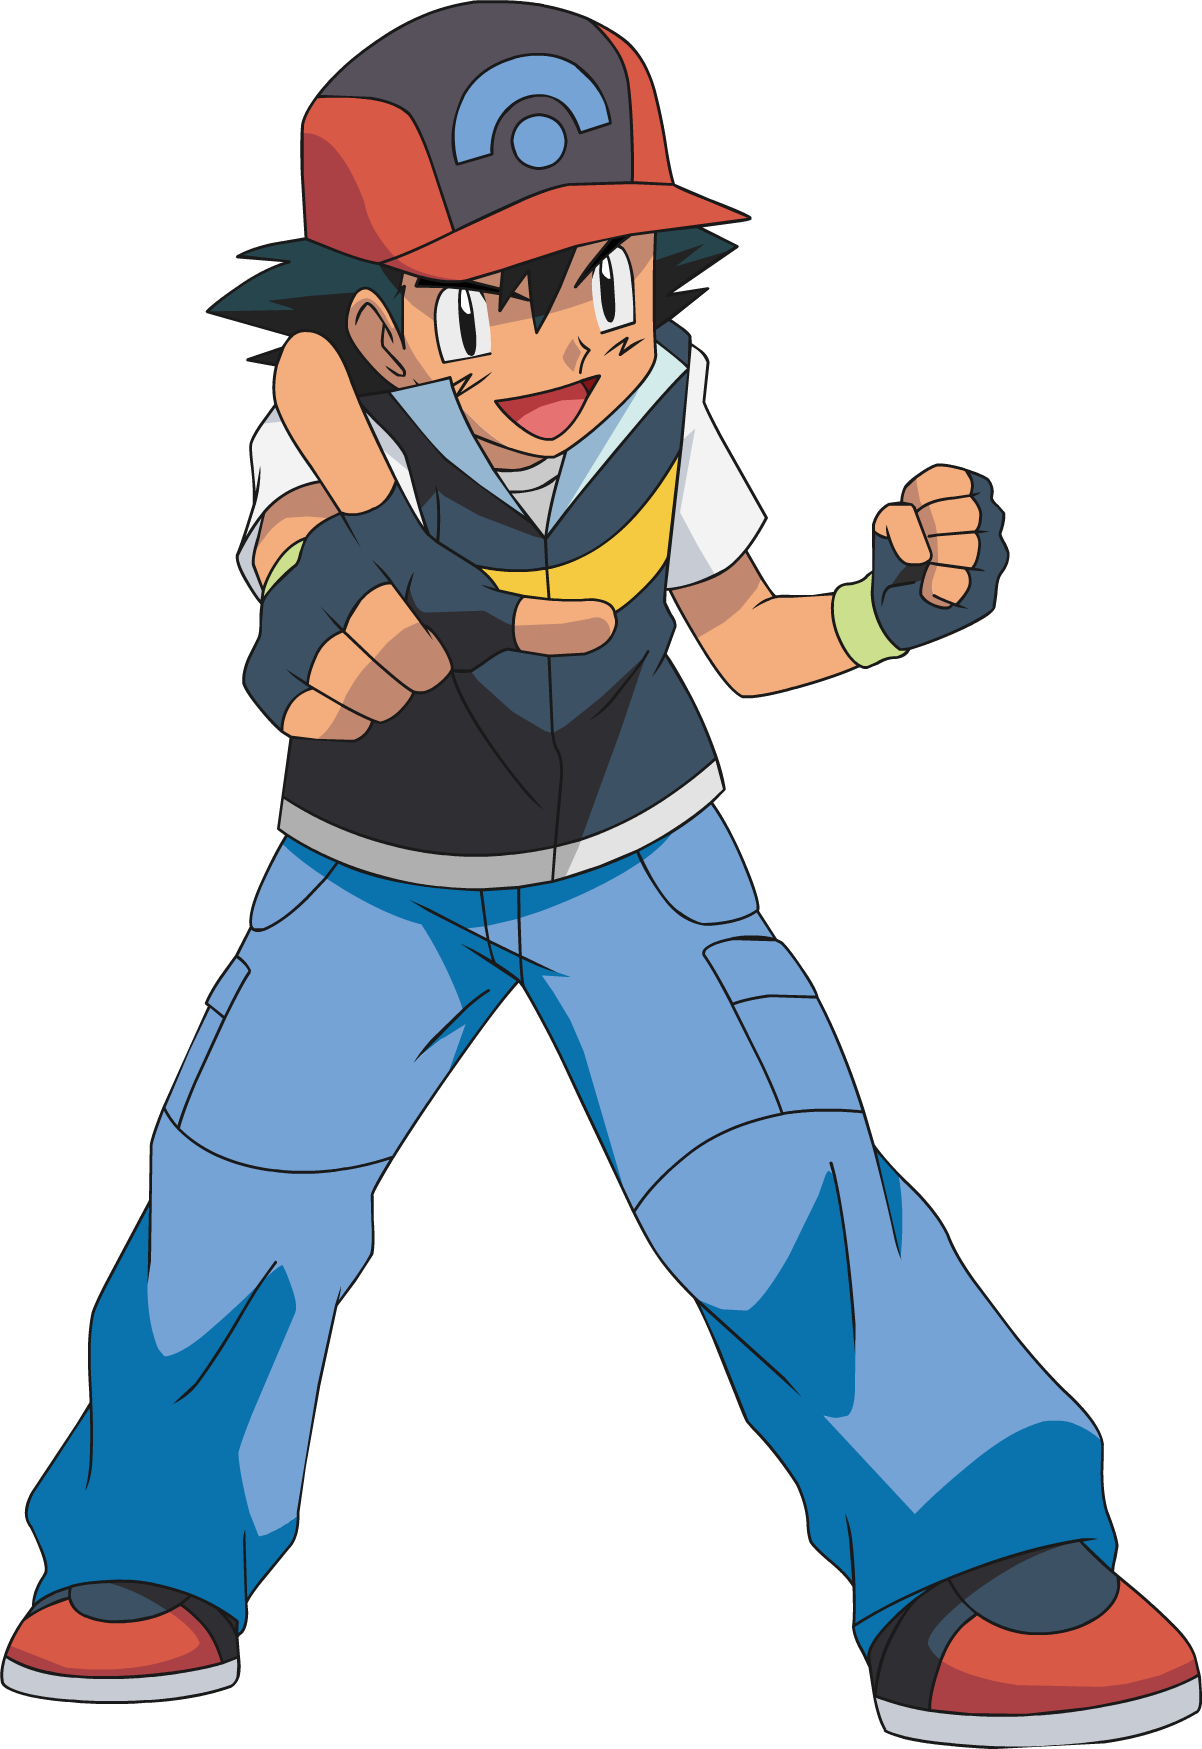 Pokeball clipart transparent background. Ash ketchum diamond pearl